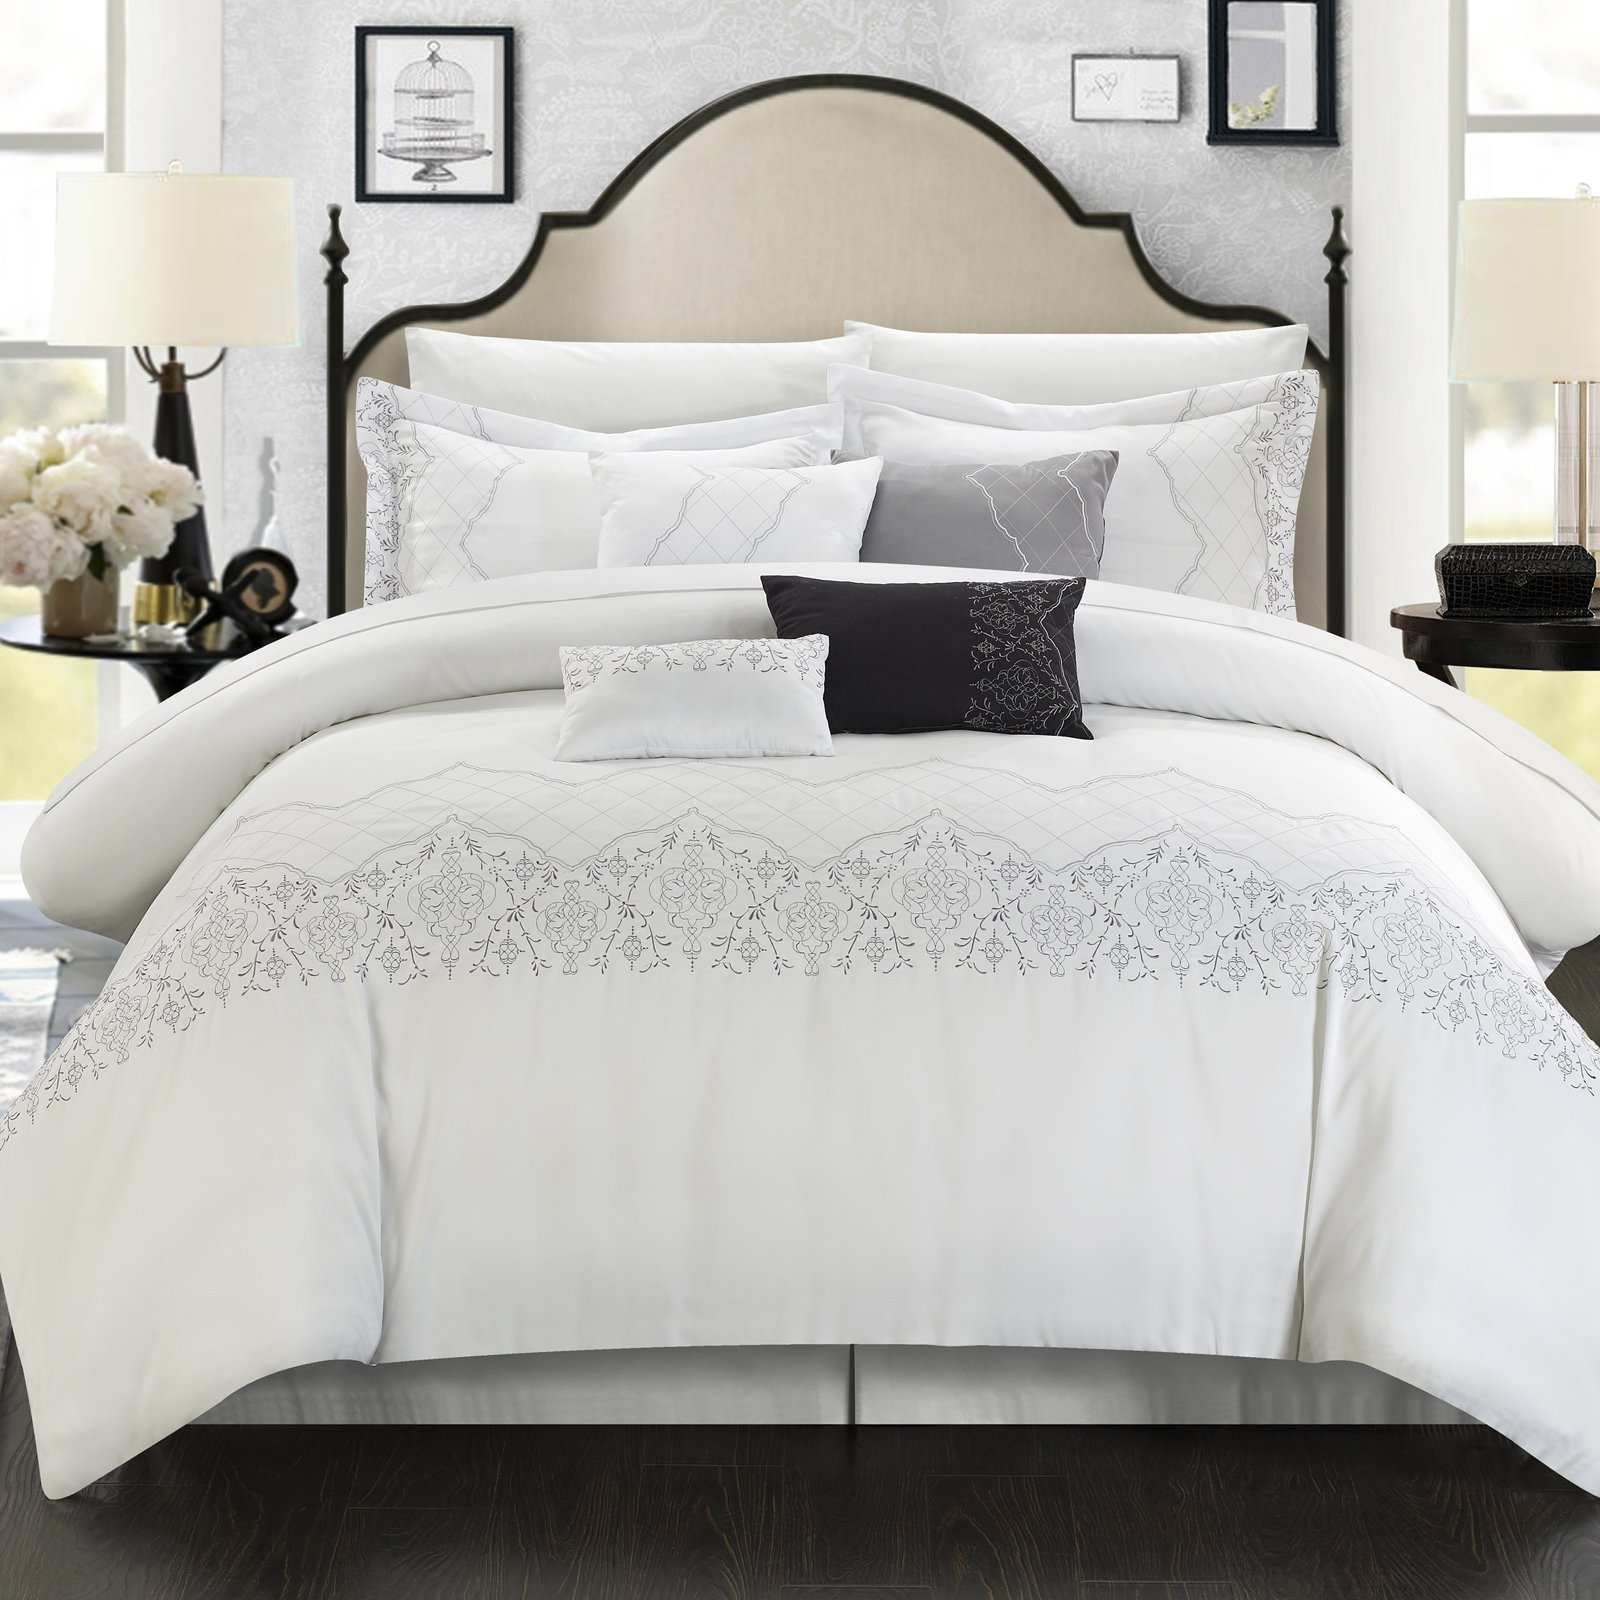 Chic Home Gratia Oversized Overfilled Embroidered 8-Piece Comforter Set